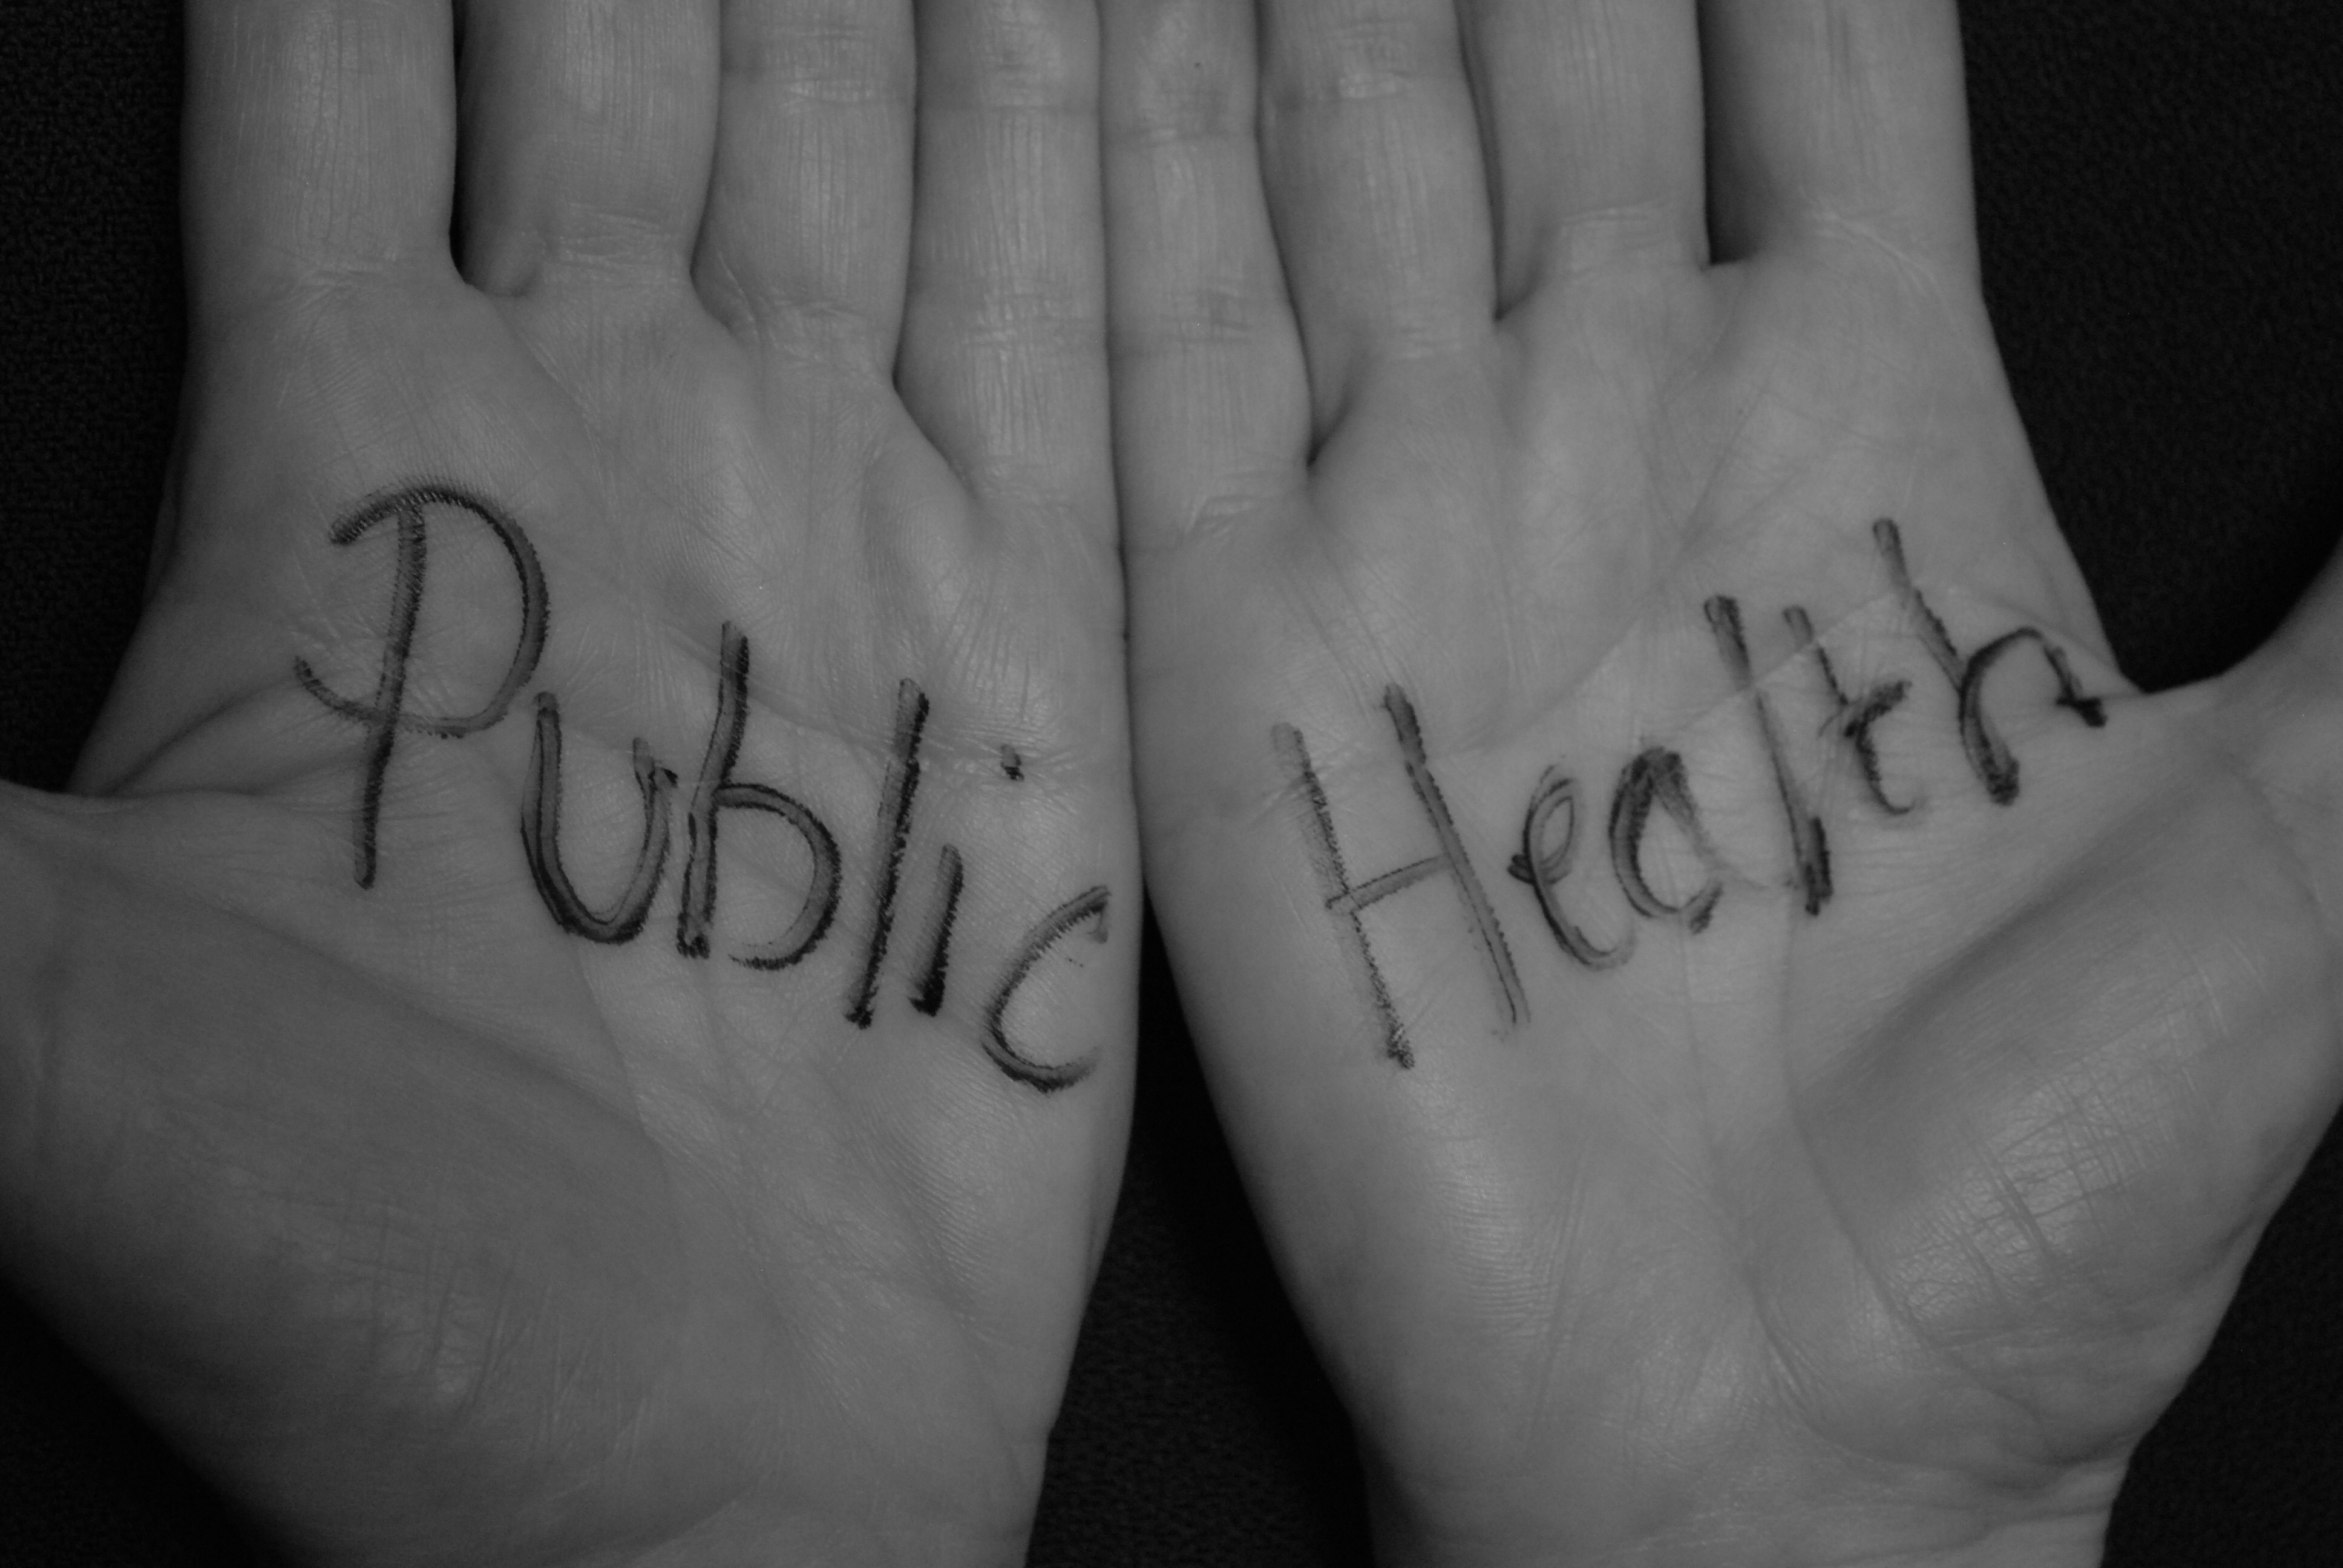 Words public health written across two palms to illustrate Public Health and Wellbeing REG image